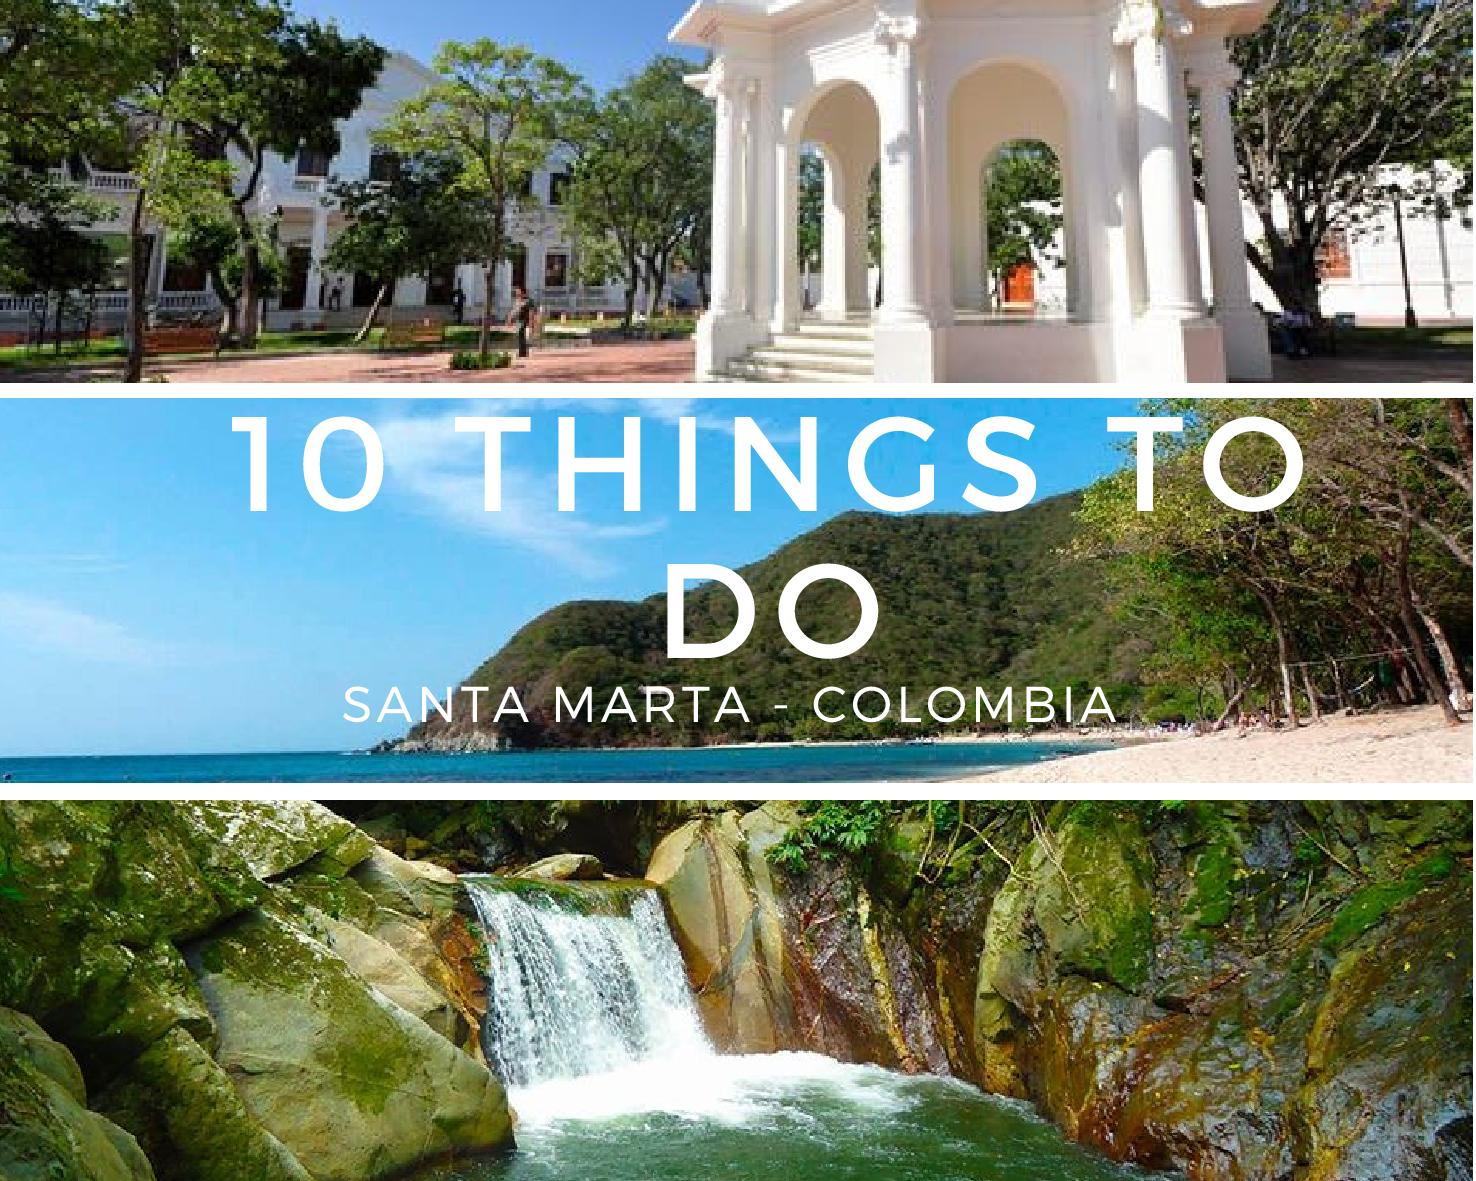 Ultimate Guide Things To Do In Santa Marta Magic Tour Colombia - 10 things to see and do in colombia